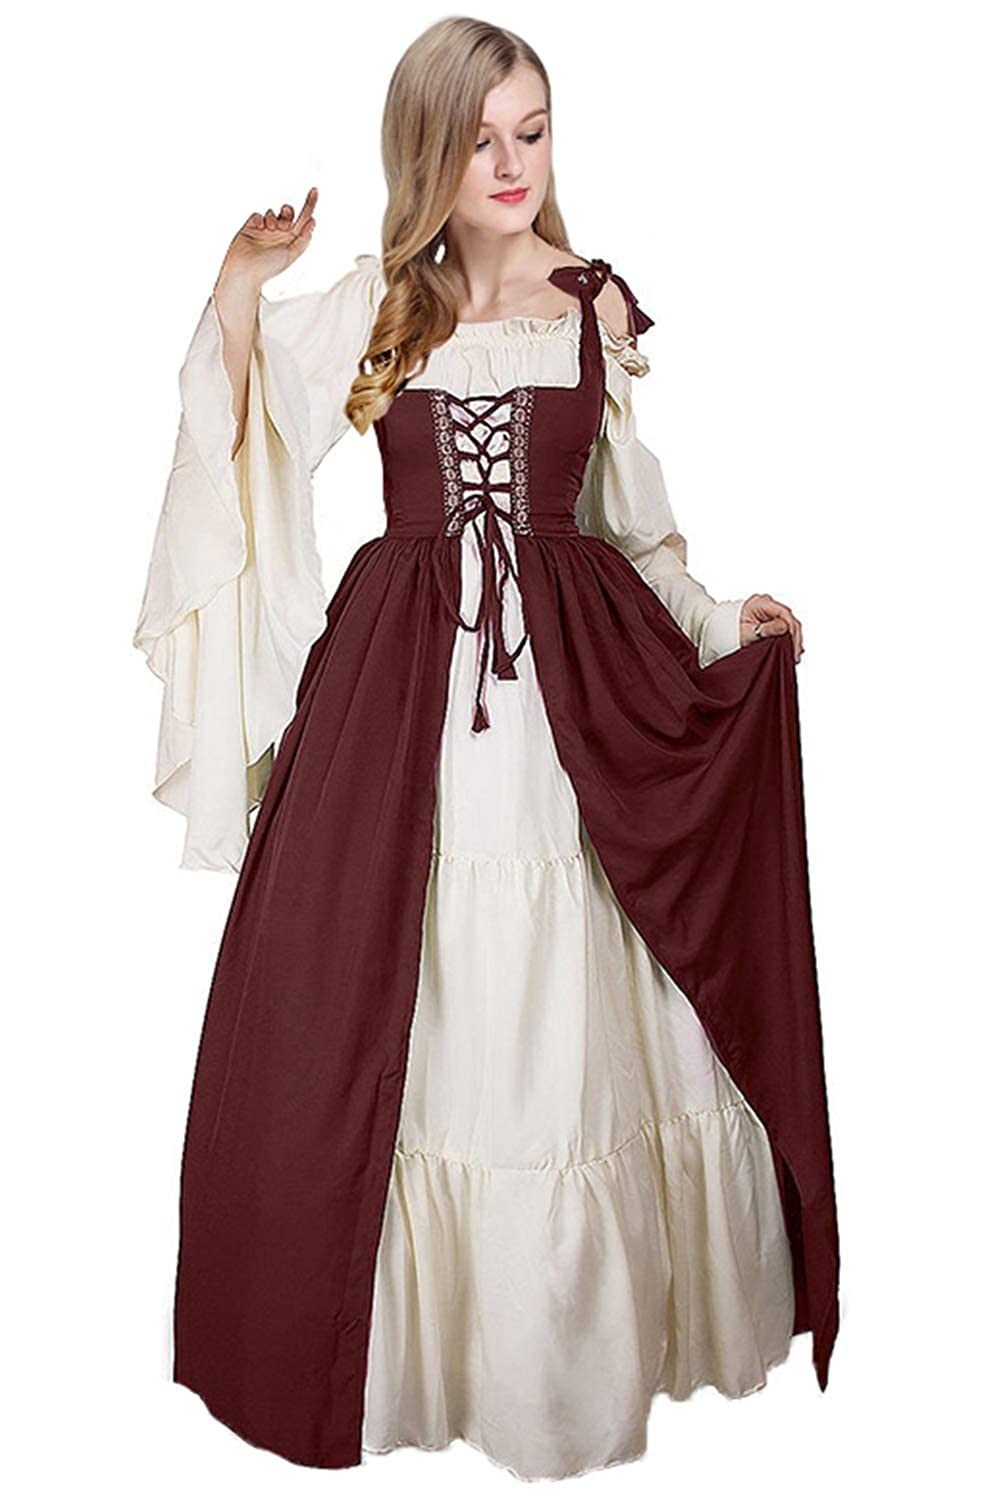 330112b2aaa Amazon.com  Newcos Boho Renaissance Costume for Women Halloween Irish  Medieval Dress  Clothing